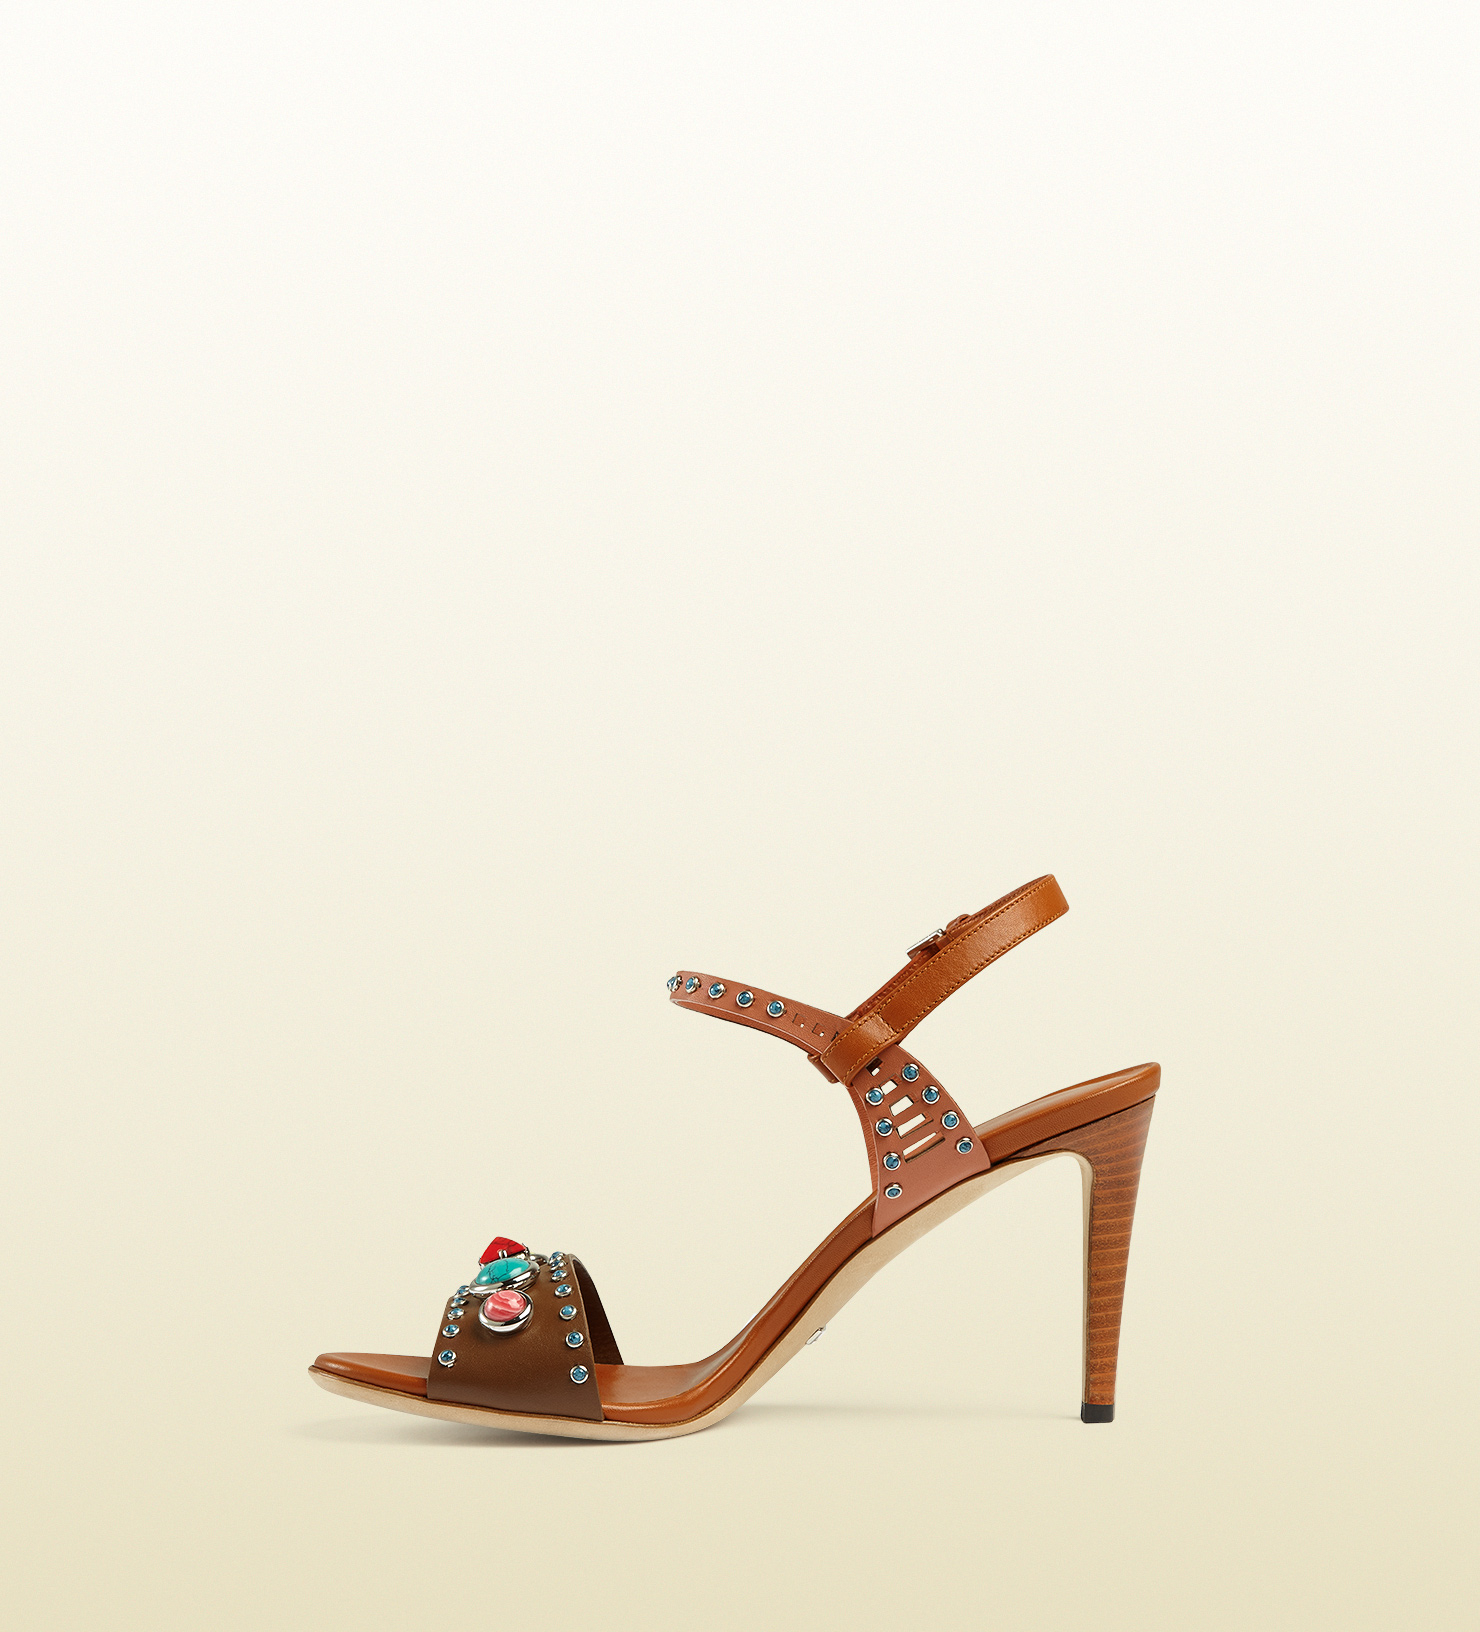 1502b8ceb17 Gucci Lika Embroidered Leather Sandal in Brown - Lyst